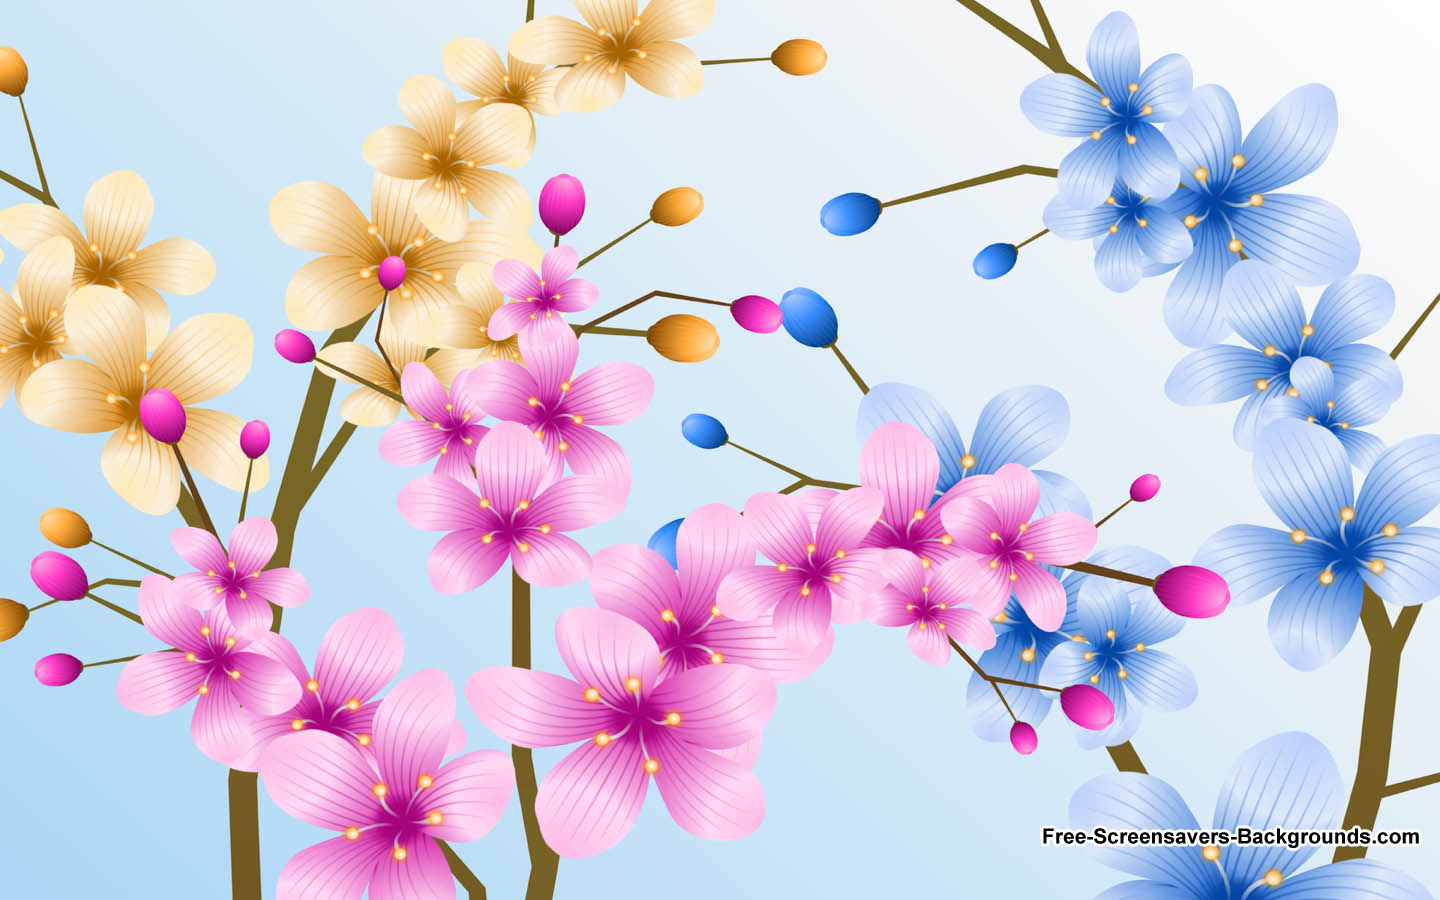 Free wallpaper backgrounds flowers png transparent download Free Flower Wallpaper Backgrounds - WallpaperSafari png transparent download